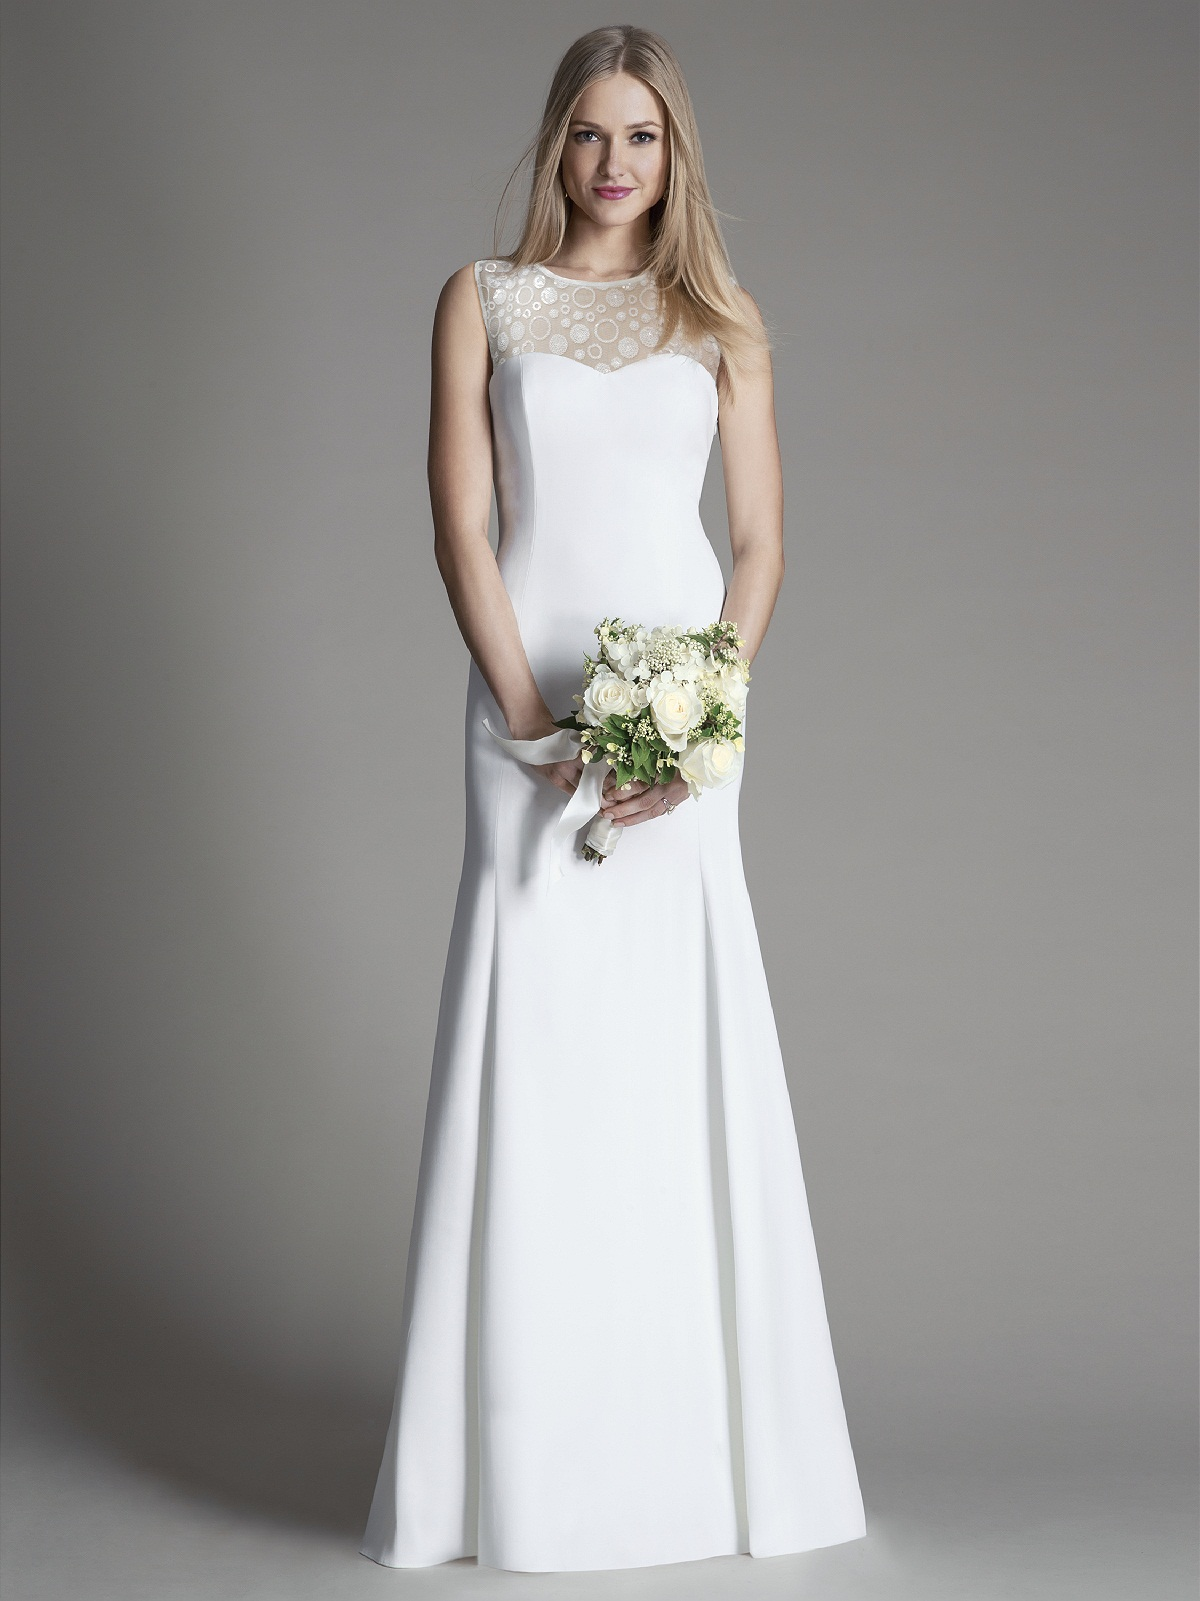 Simple Illusion Neck Sleeveless Lace Appliqued Satin Fit Flared Satin Wedding Dress